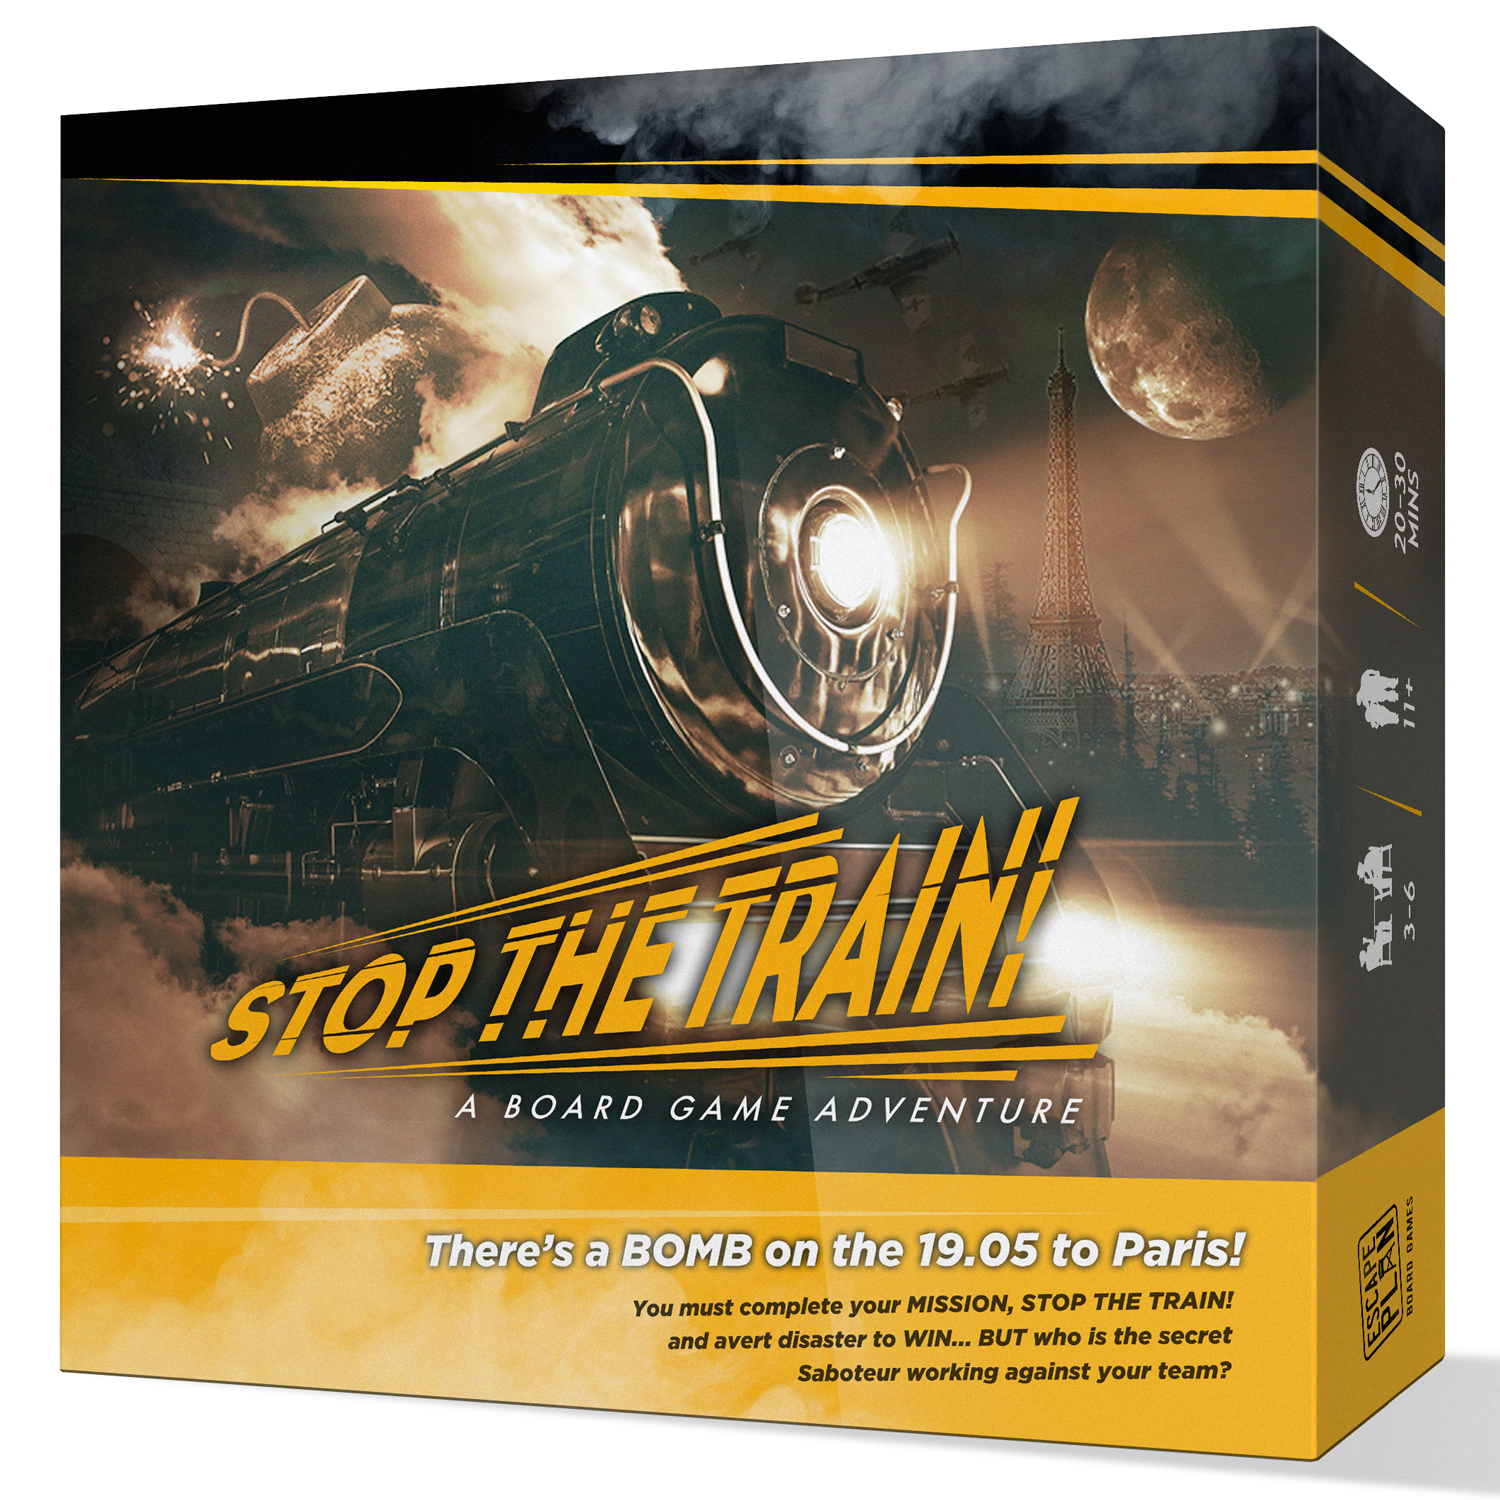 Stop the Train! Box ArtImage courtesy of the designer.